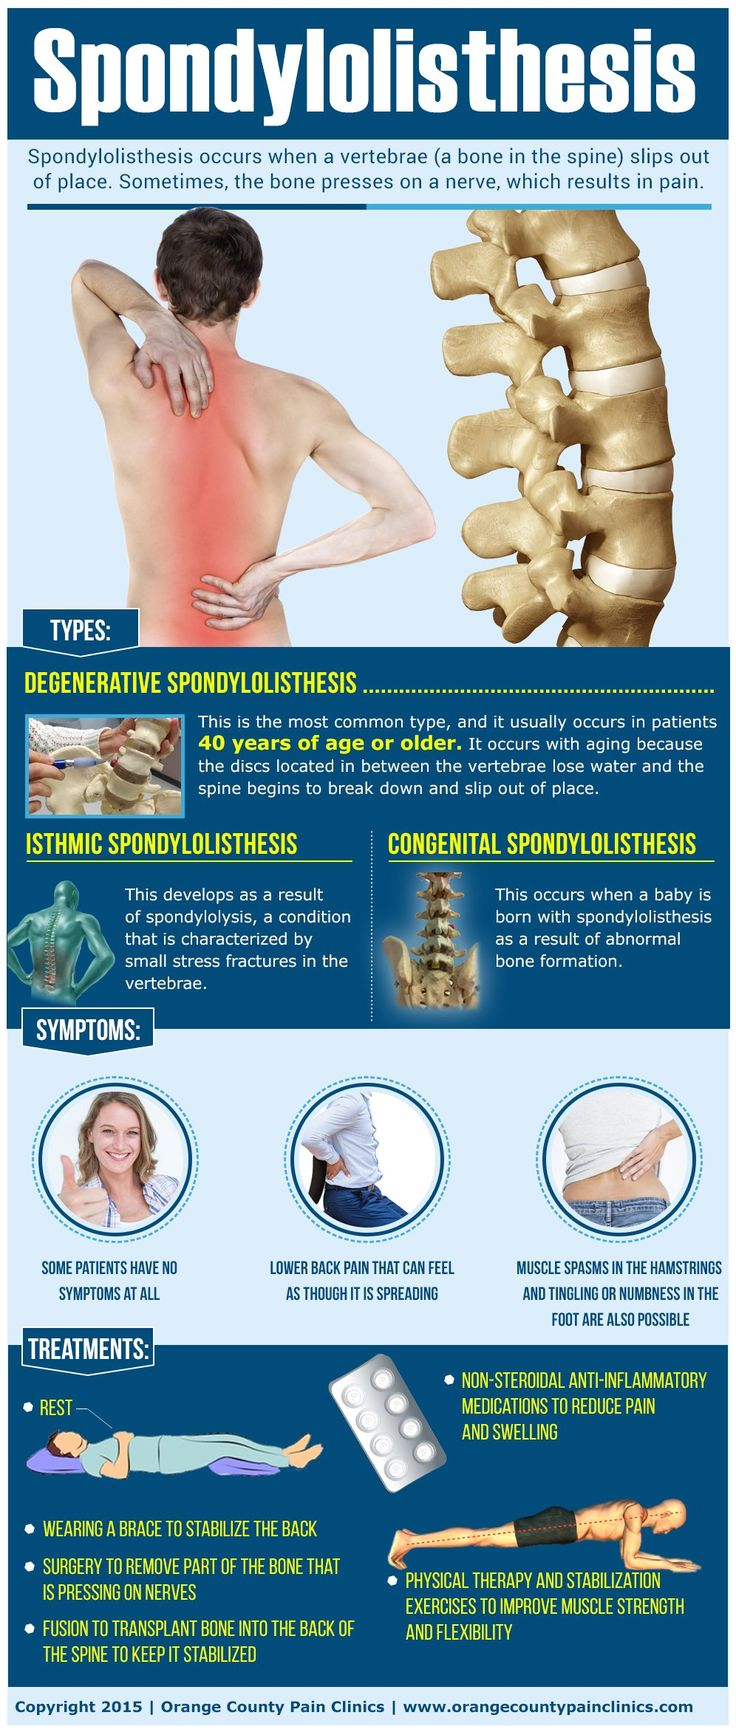 Spondylolisthesis by orange county pain clinics